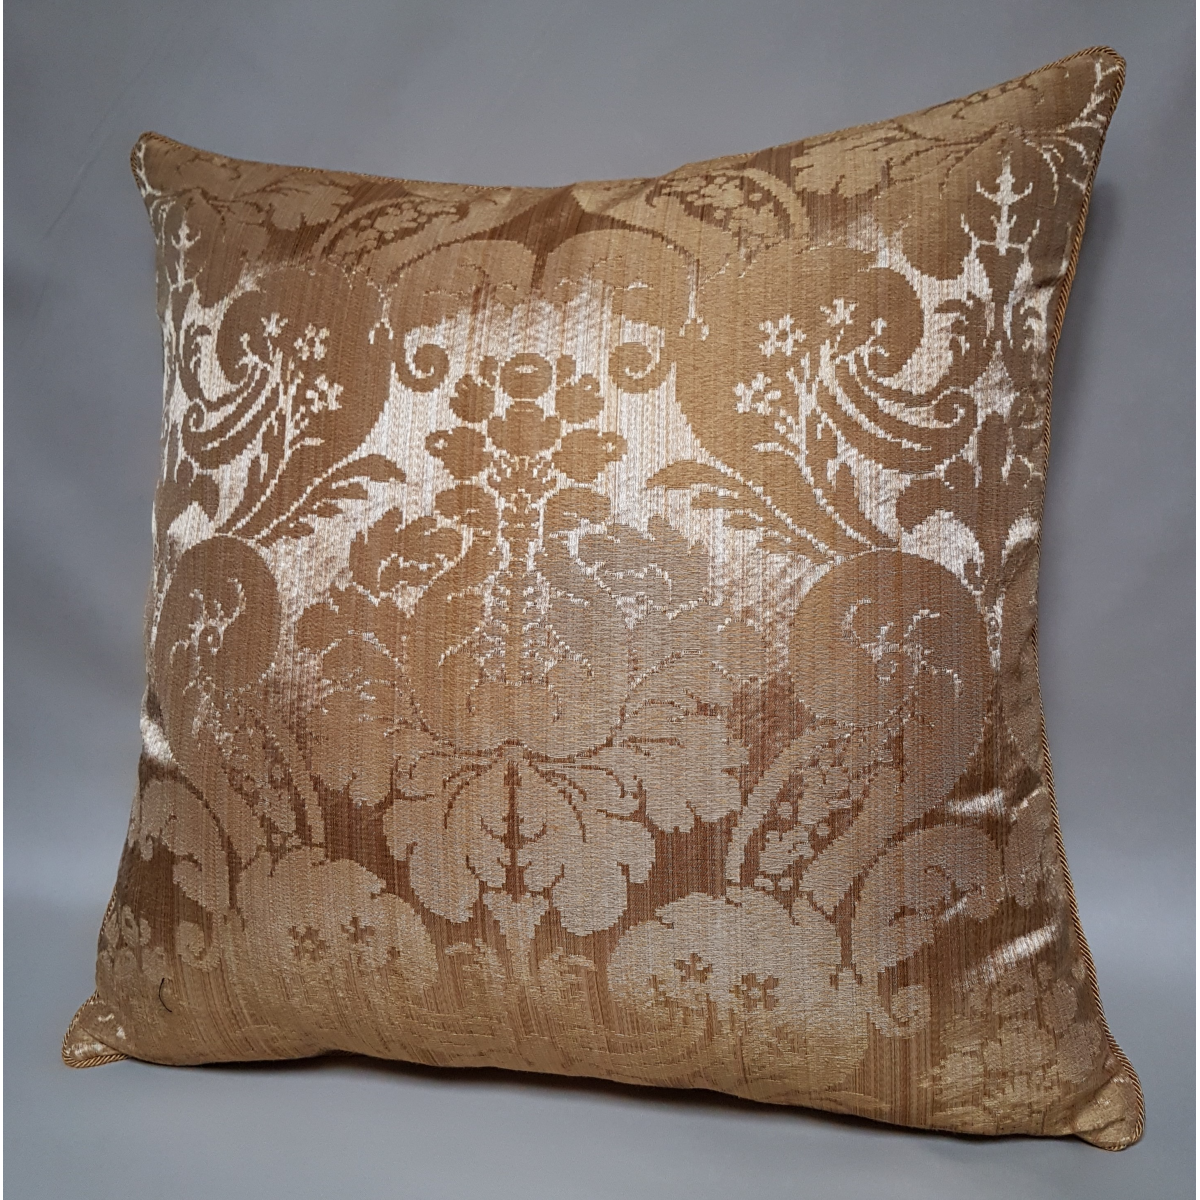 Gold Throw Pillows | Ralph Lauren Throw Pillows | Throw Pillows for Couch